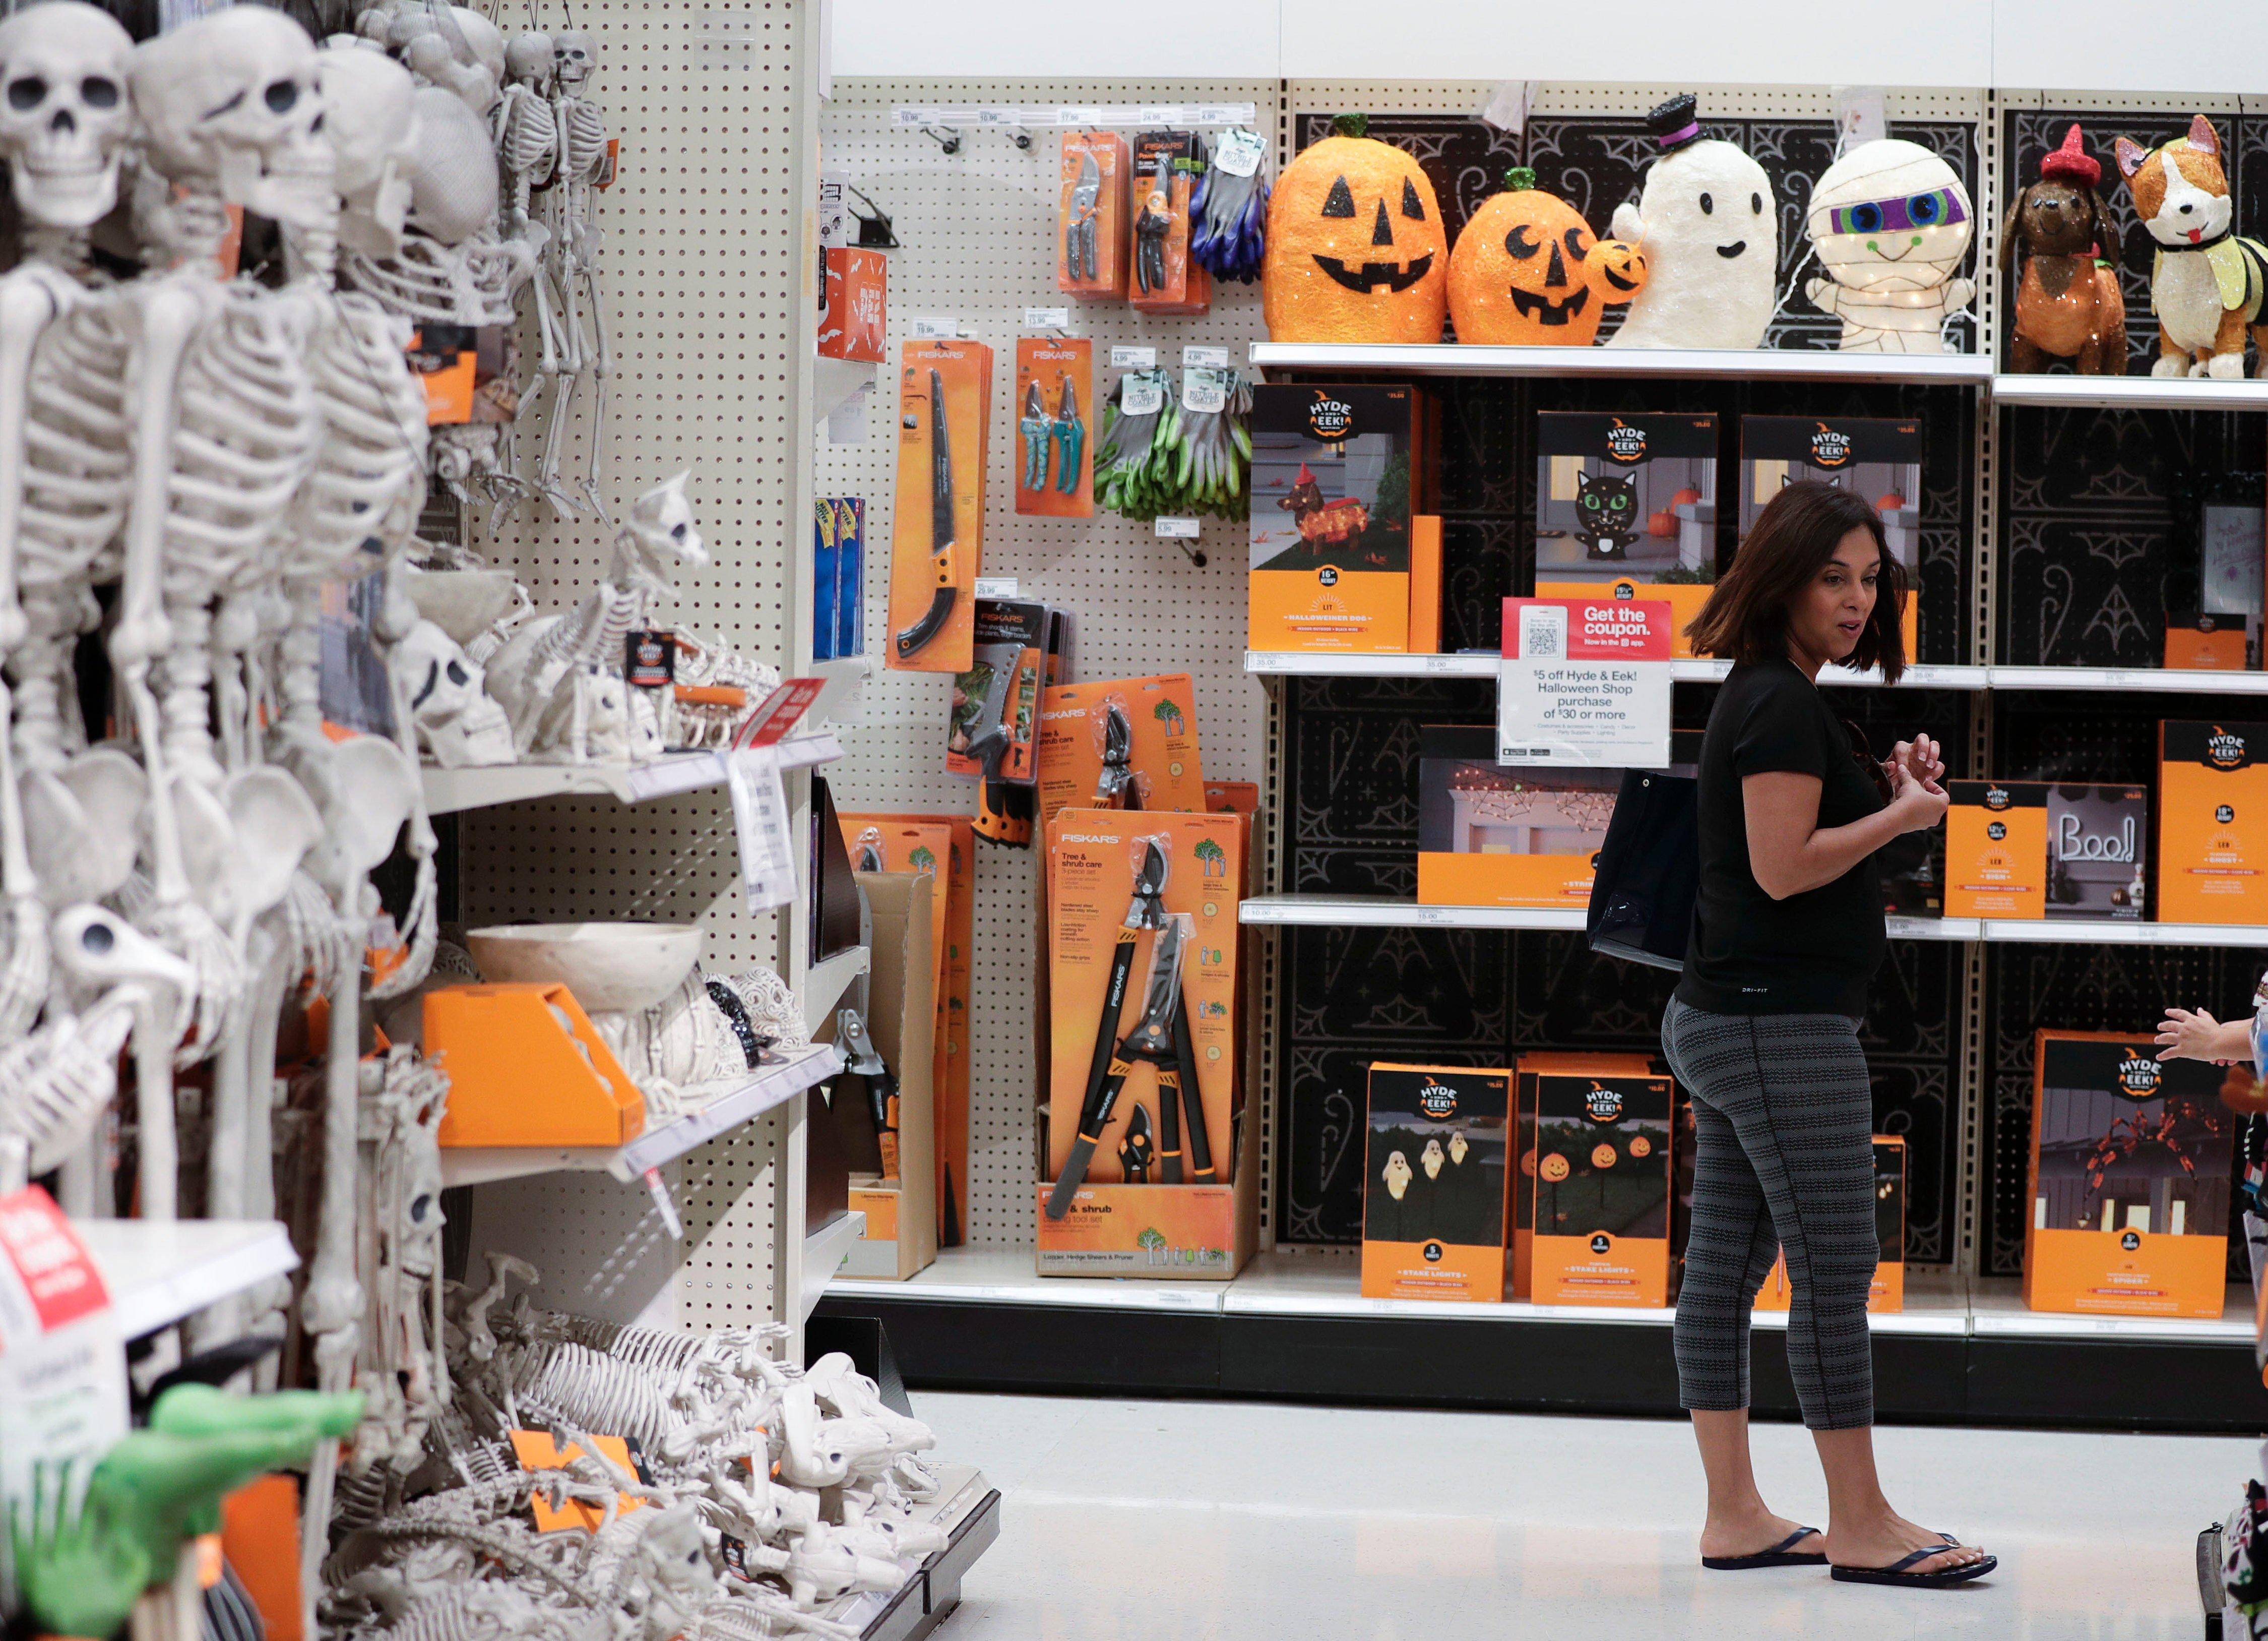 Halloween Shop Displays.Why Do Stores Put Out Halloween Decorations So Early